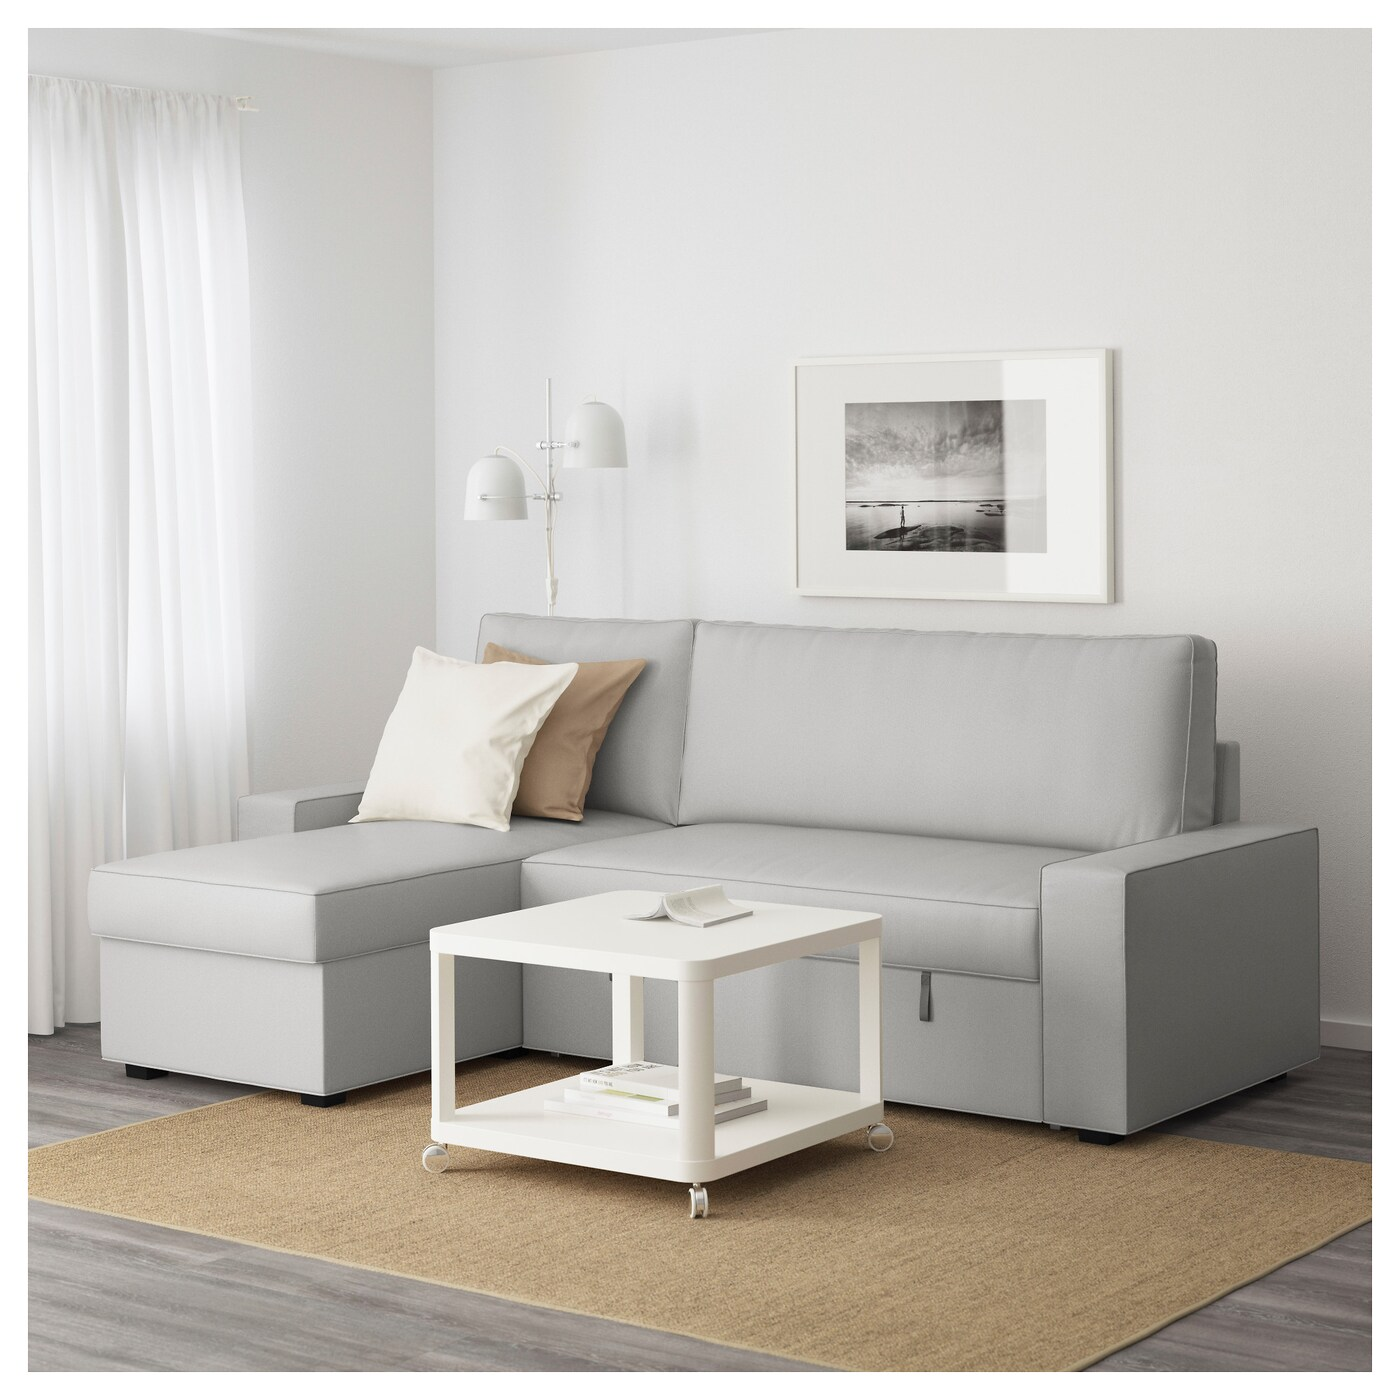 vilasund cover sofa bed with chaise longue sectional for sale ramna light grey ikea